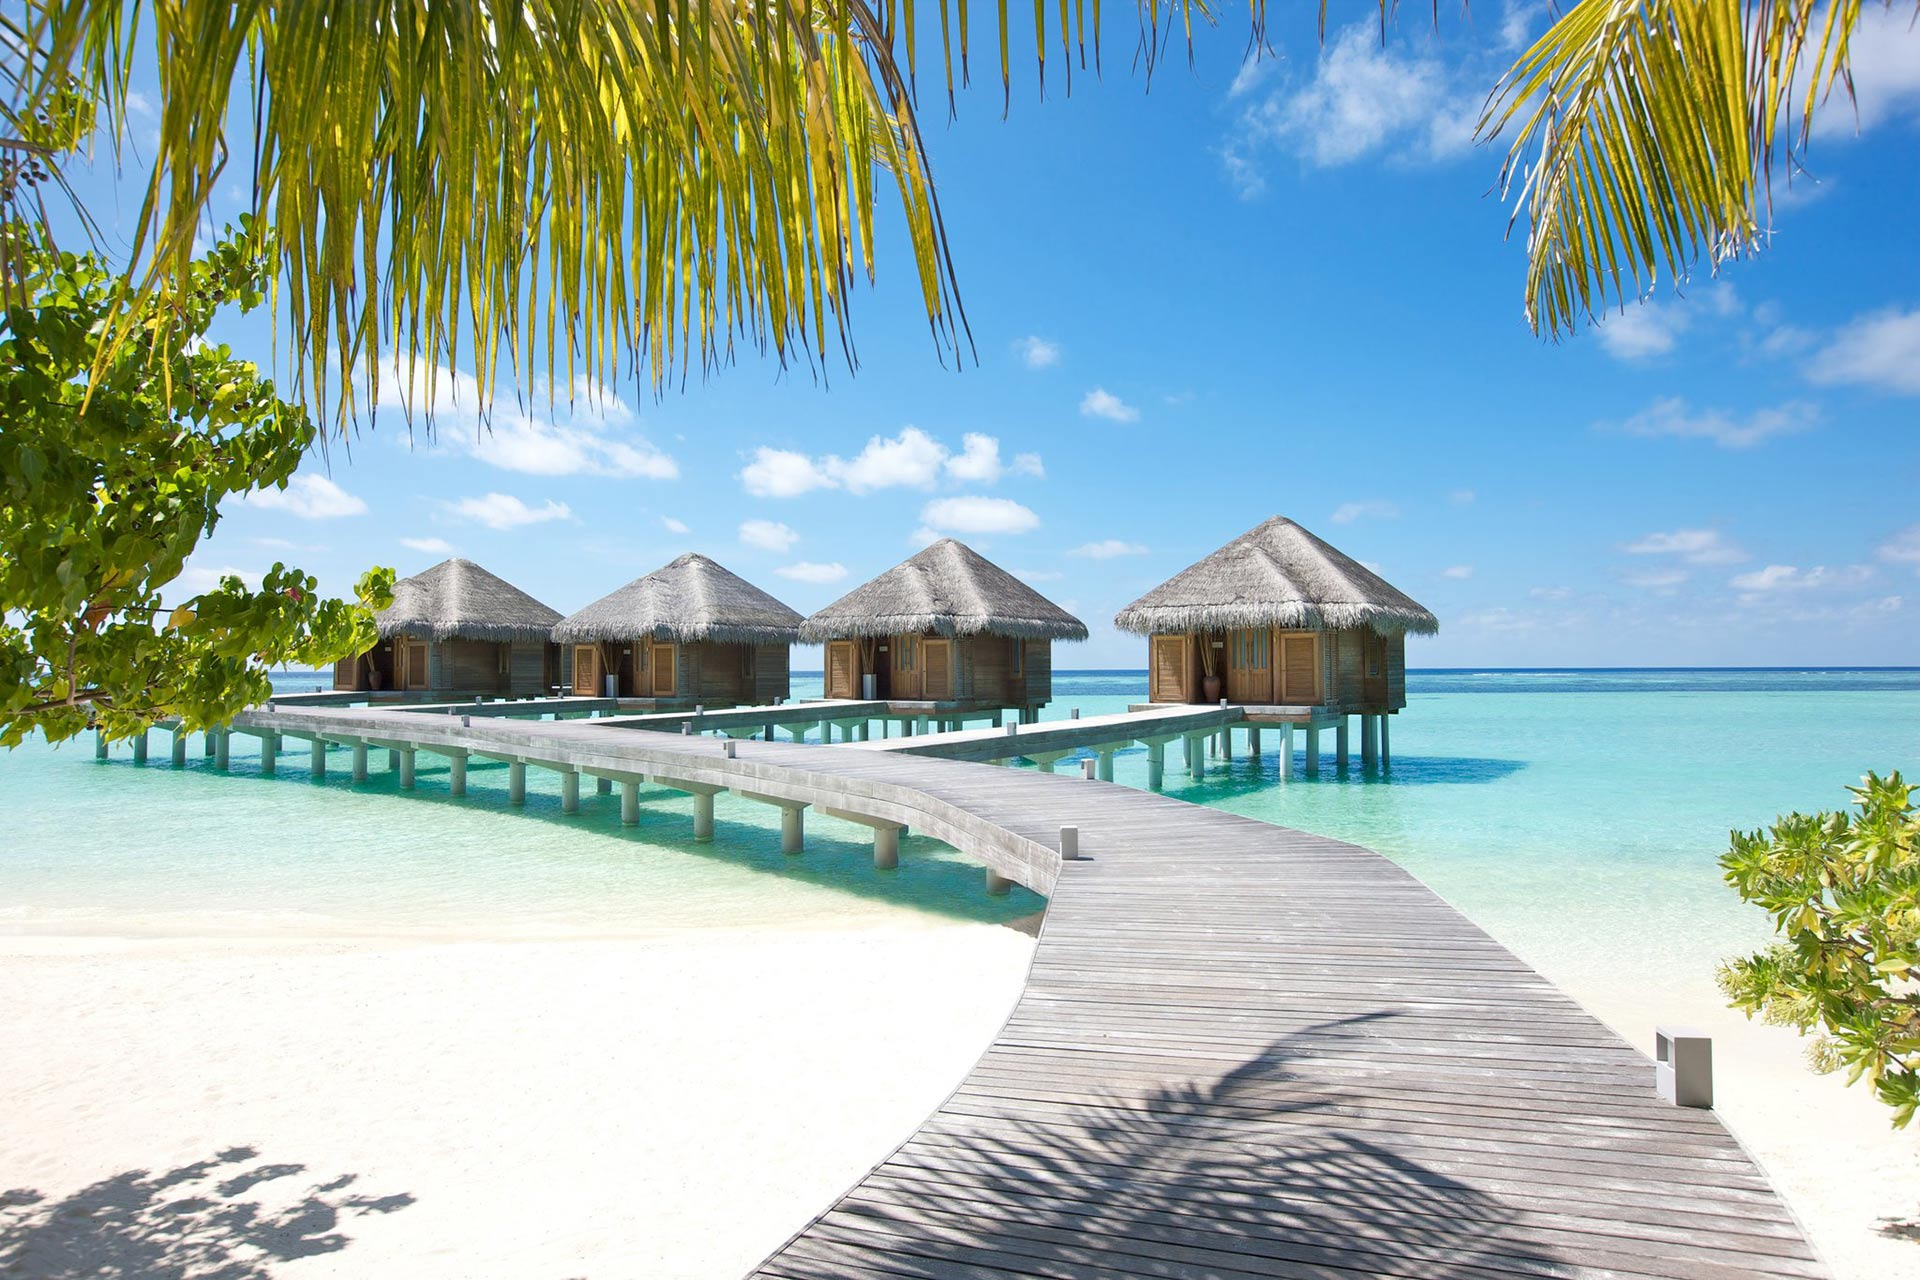 Lux* South Ari Atoll Resort in the Maldives; Courtesy of Lux* South Ari Atoll Resort